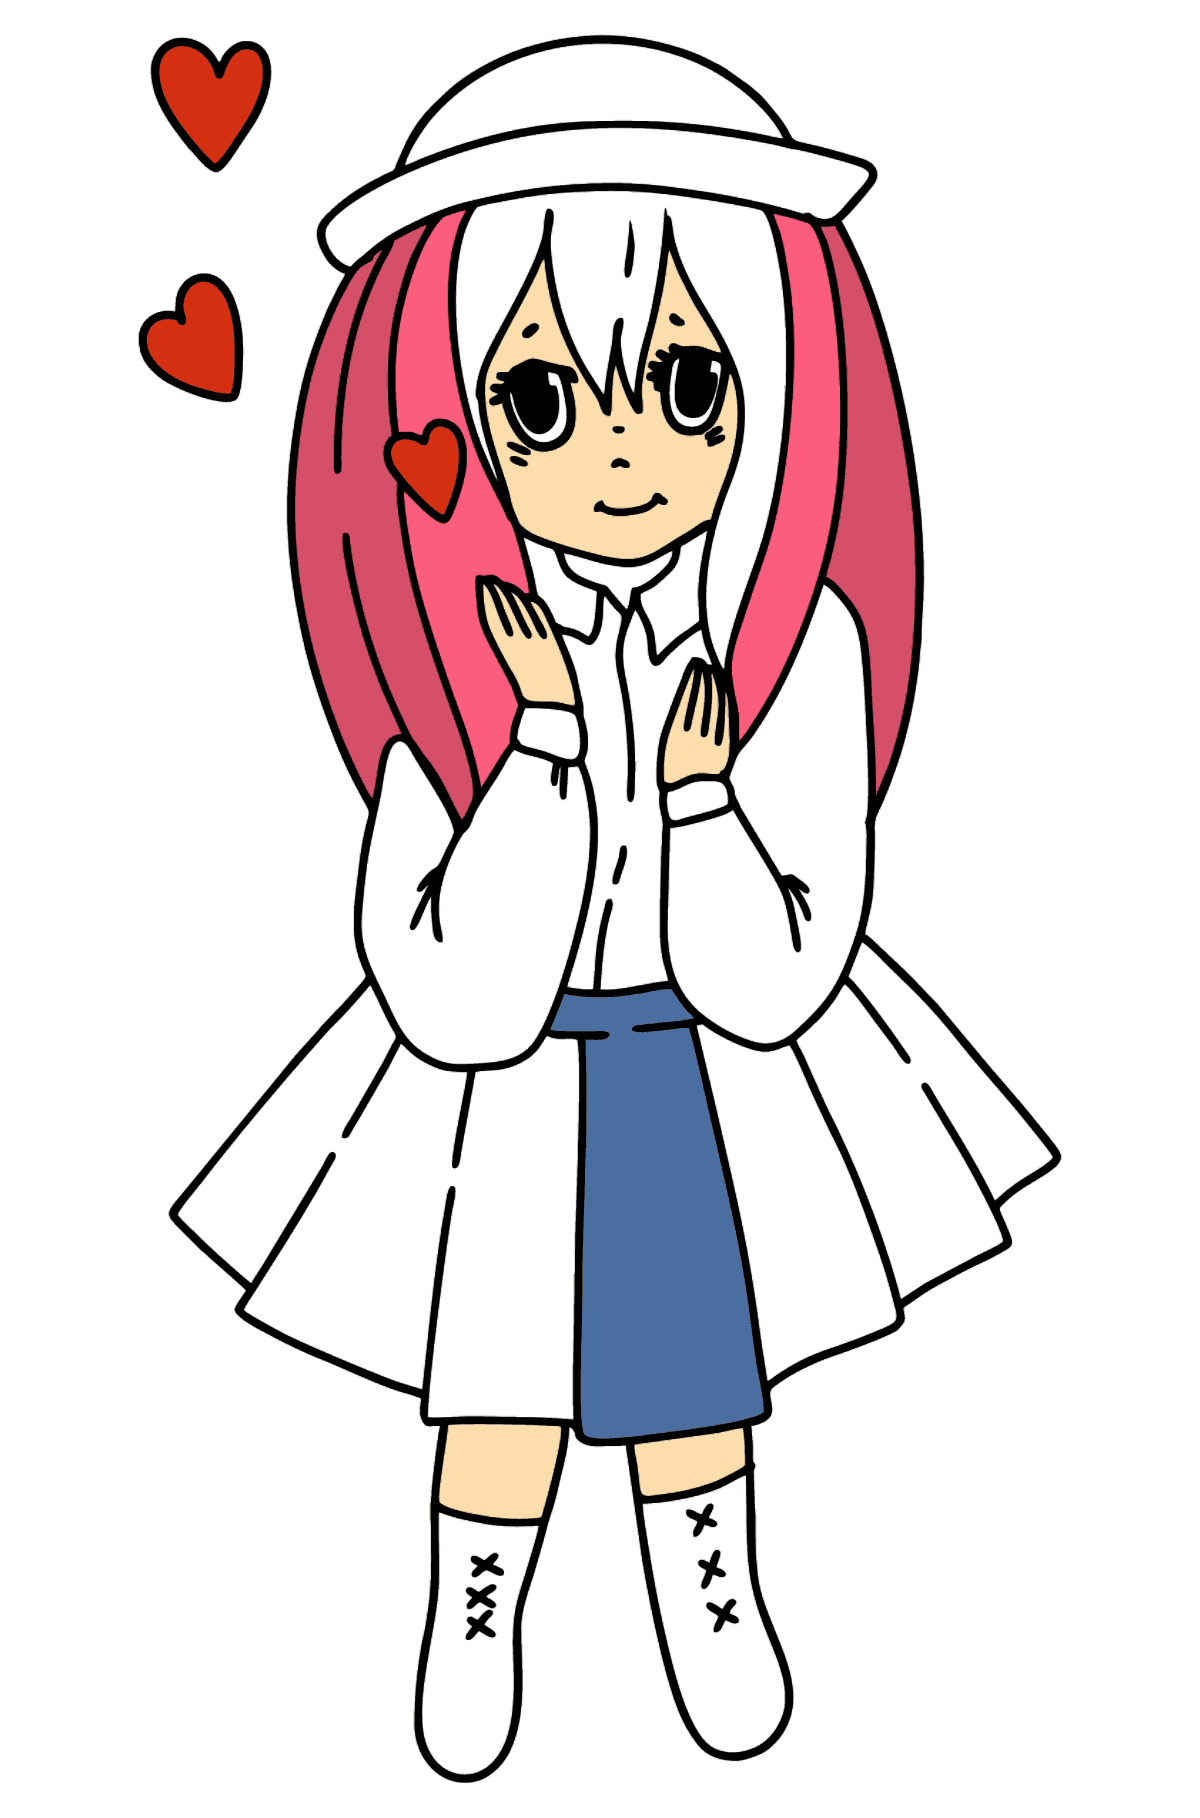 Anime girl in love coloring page - Coloring Pages for Kids